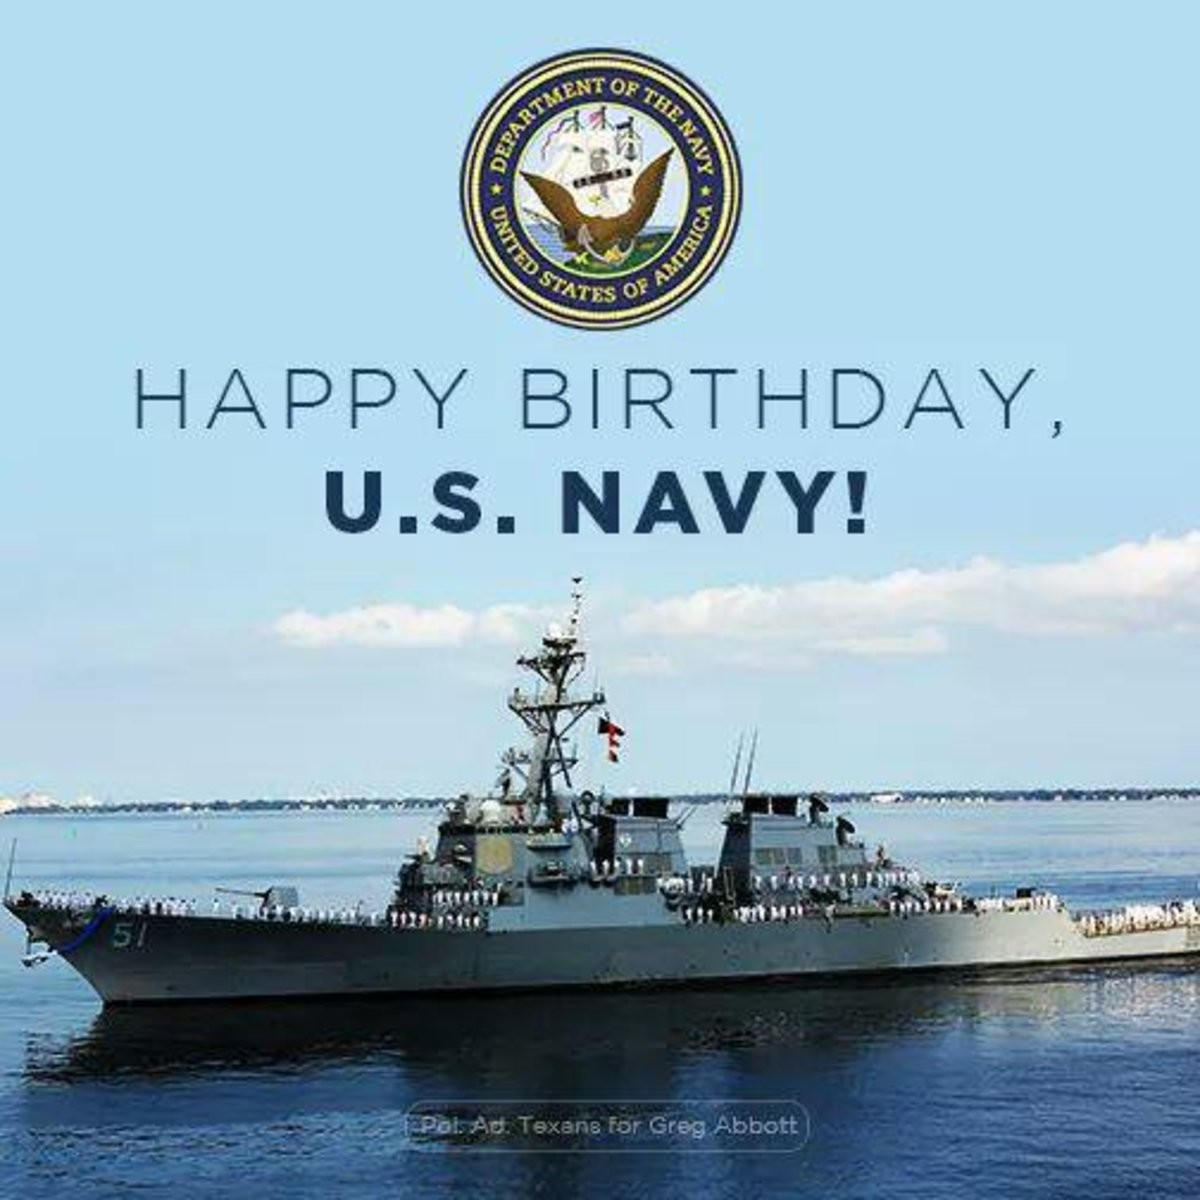 Happy Birthday to the US Navy. Does anyone who was in the US Navy want to tell a good sea story? Maybe just moments of abject stupidity? Or hilariously jerry-ri